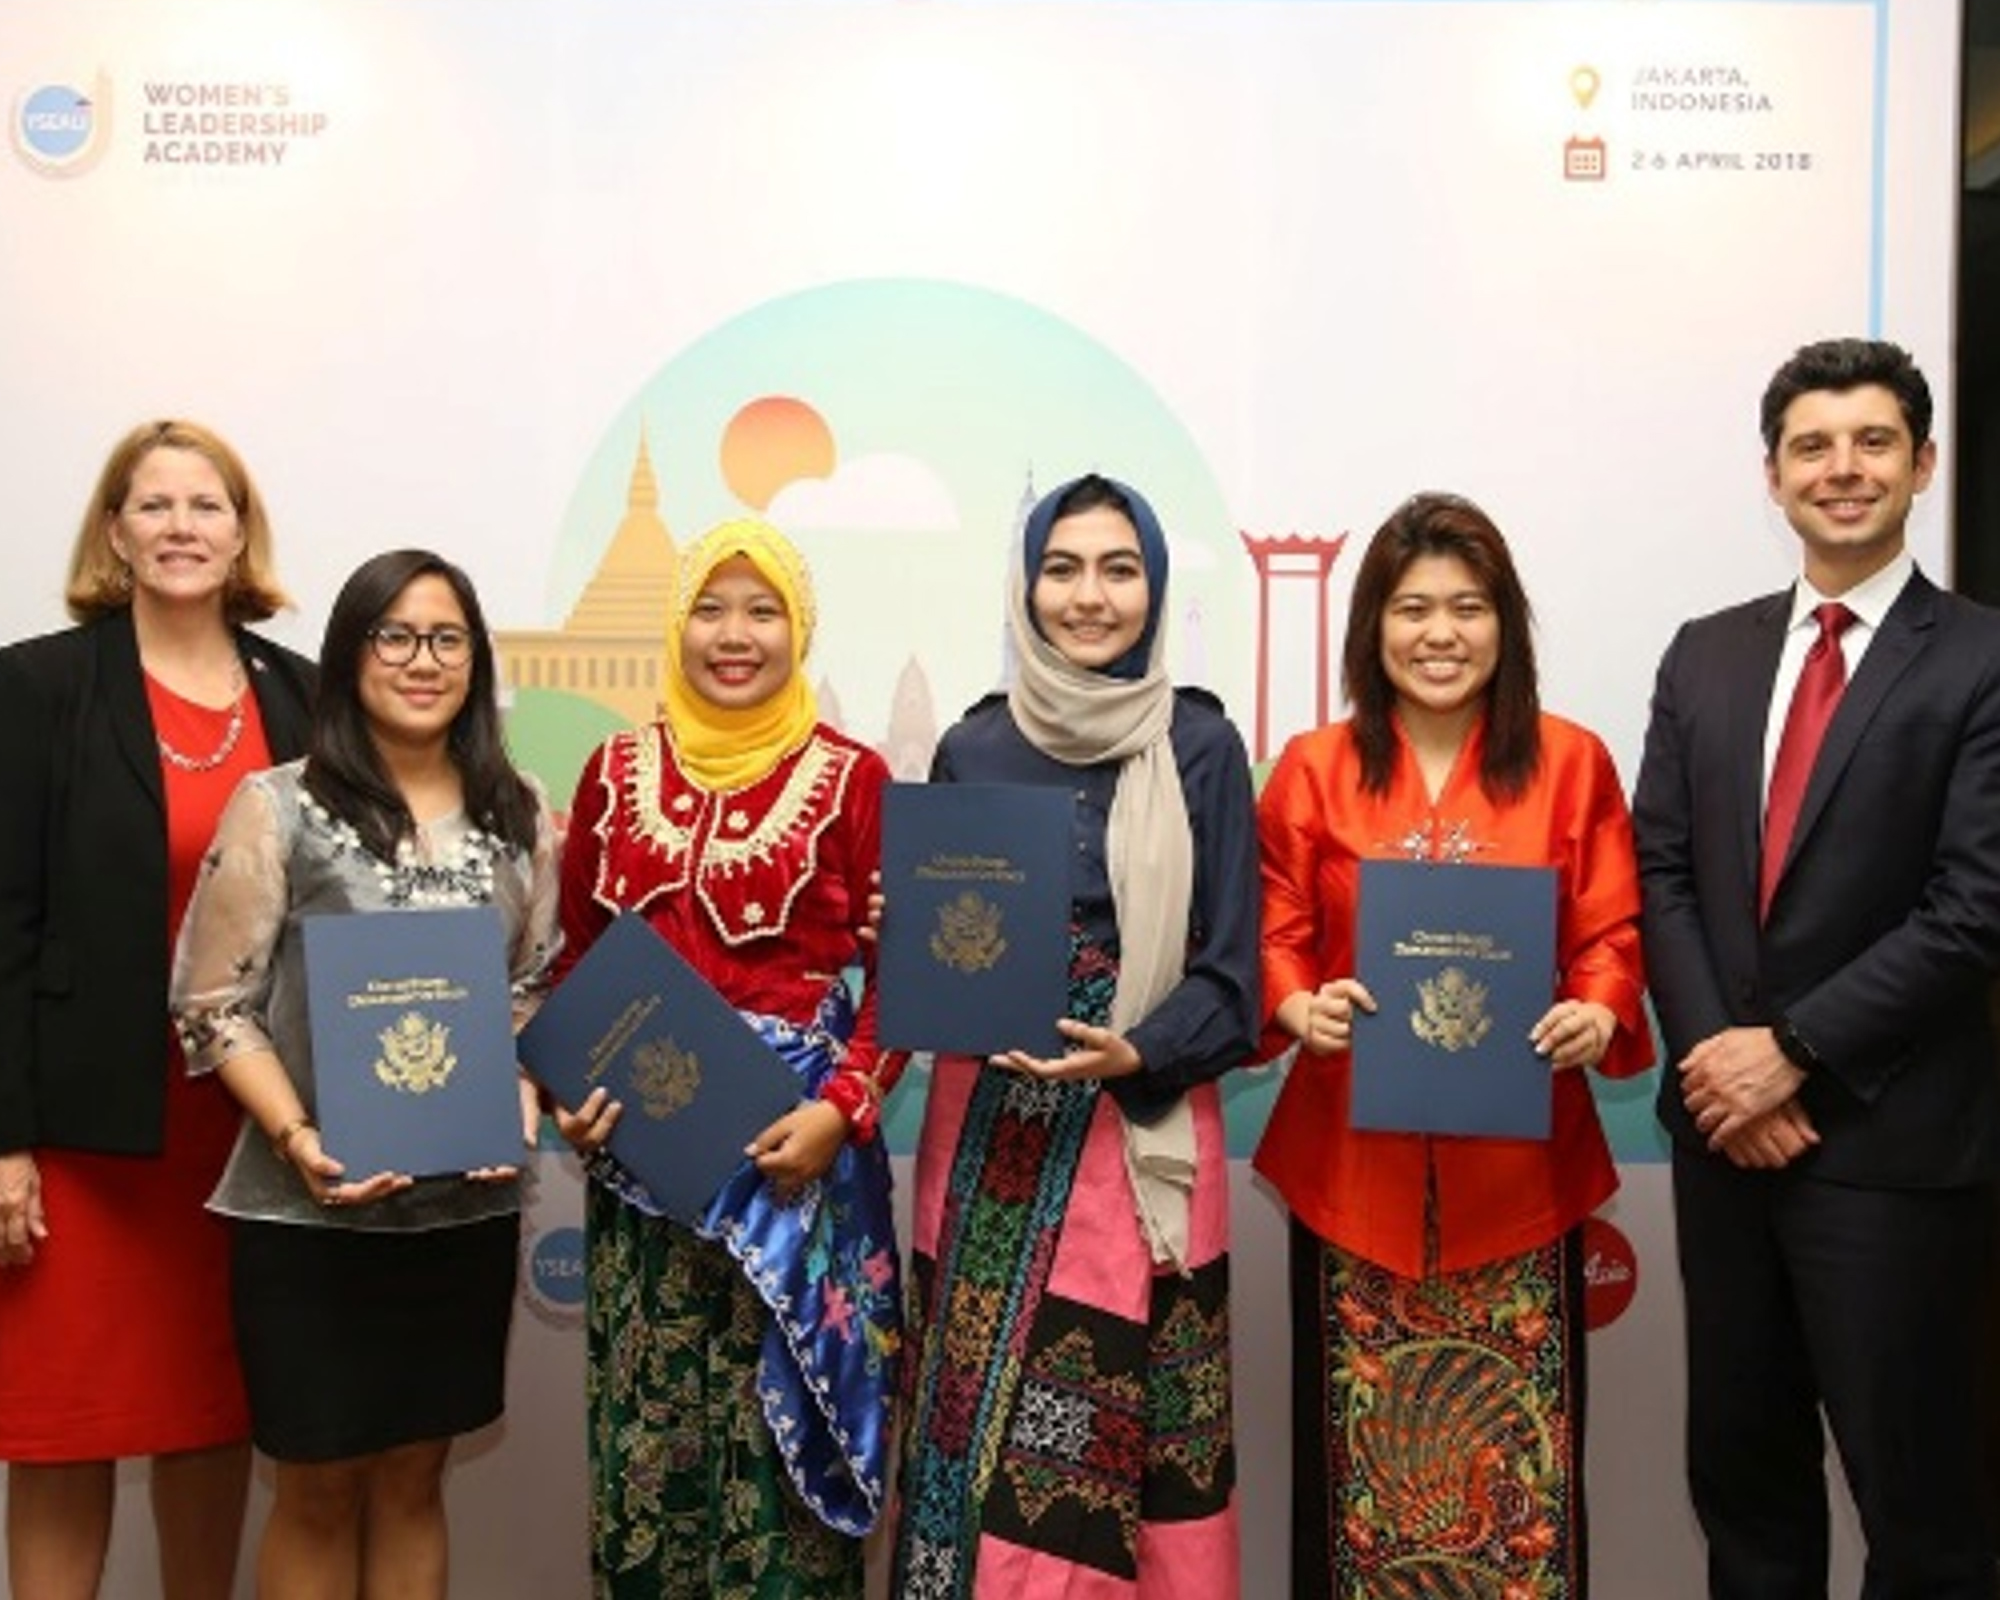 WAGI attends women's leadership initiative in Jakarta